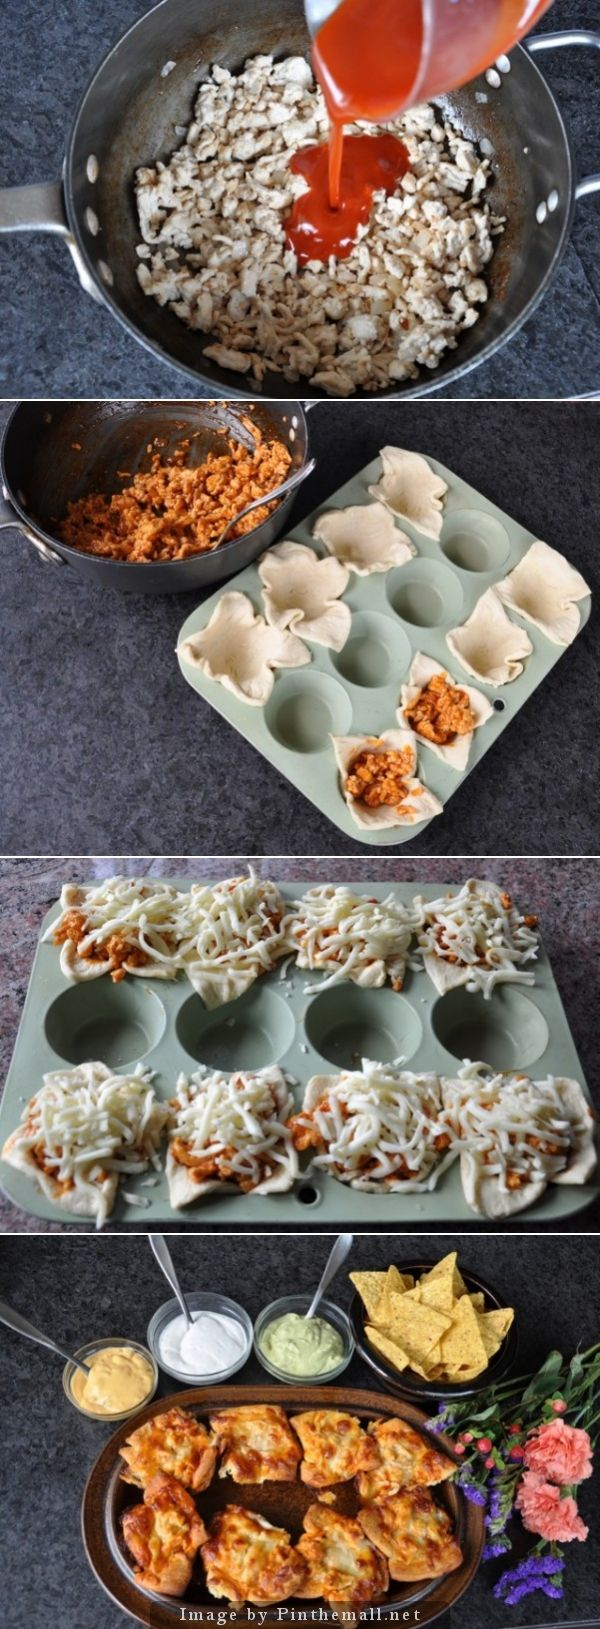 Buffalo Chicken Cups Texas Pete Style Recipe #tailgating #gameday